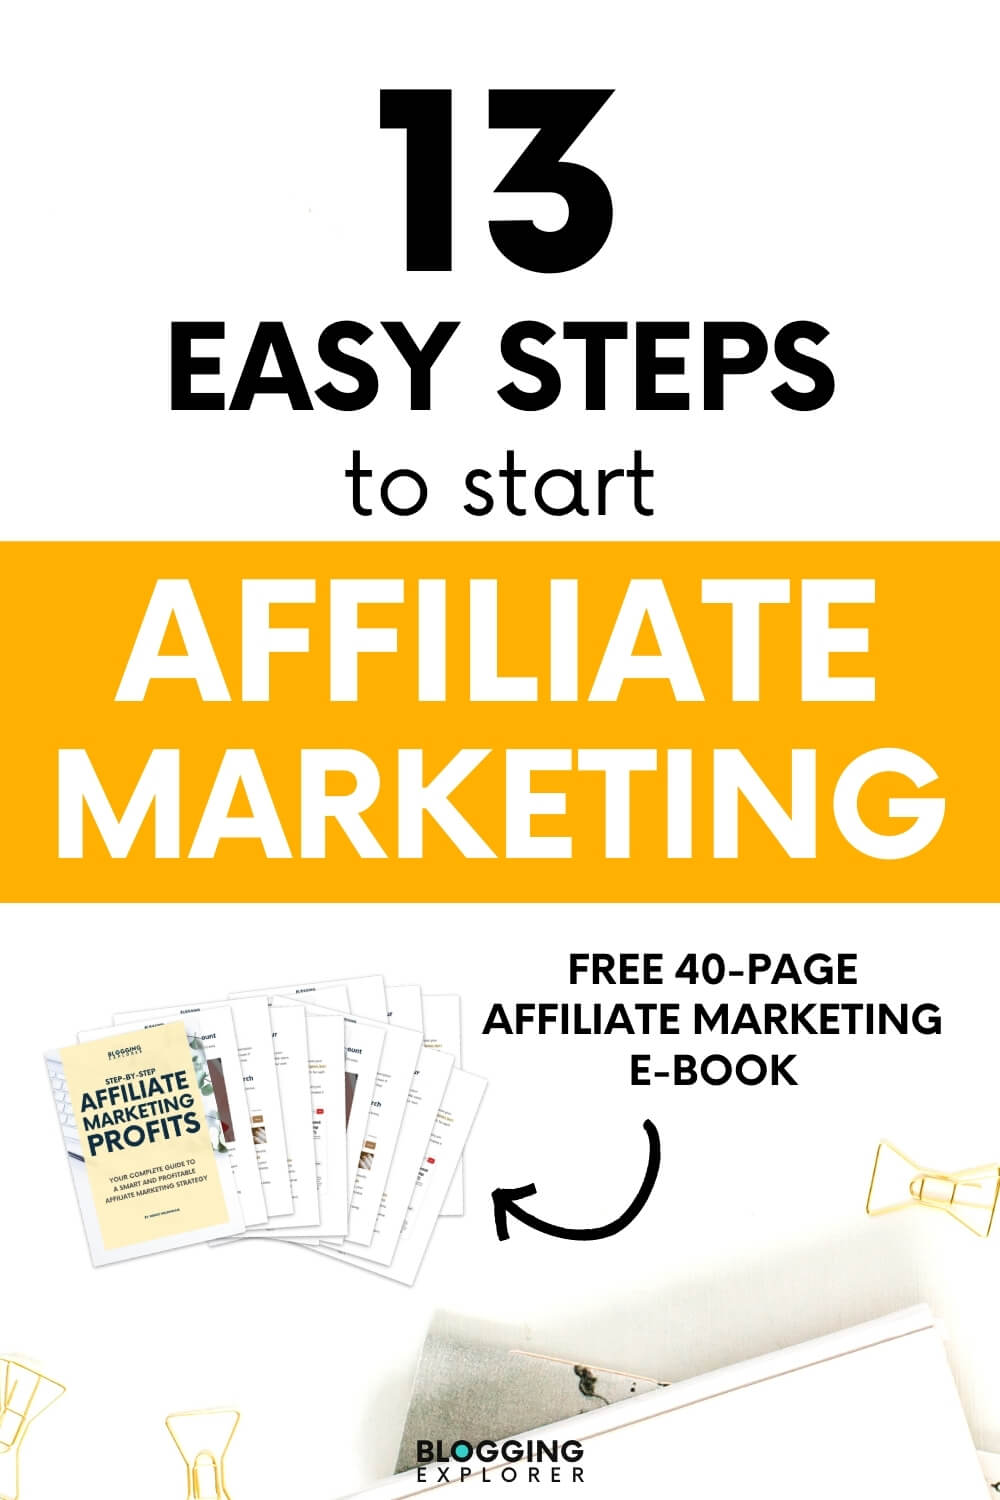 Affiliate Marketing for Dummies in 2020: How to Make Money Step-by-Step